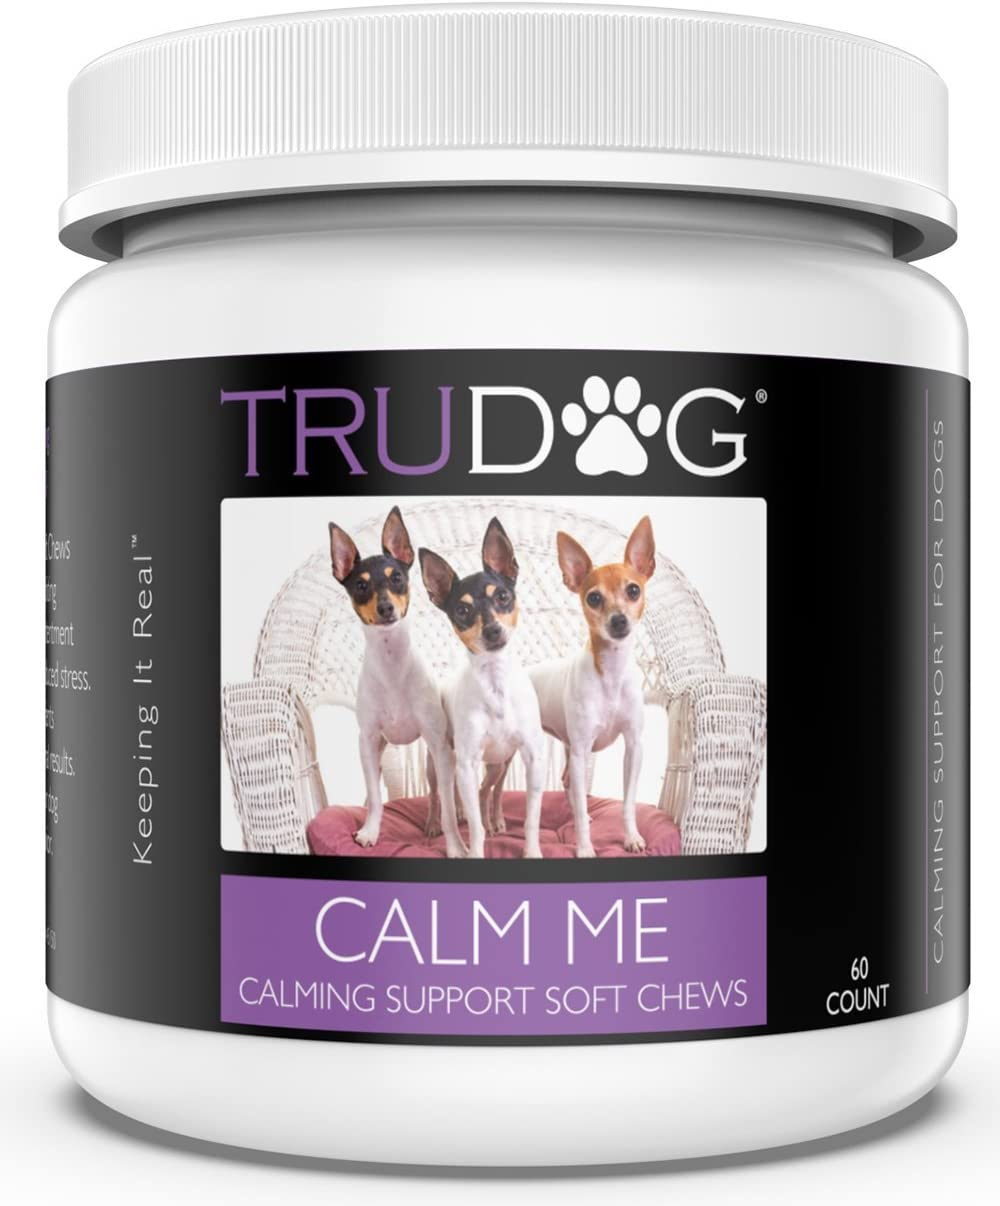 Trudog: Calm Me - Calming Support Soft Chews (60 Count) - Natural Stress Relief for Dogs